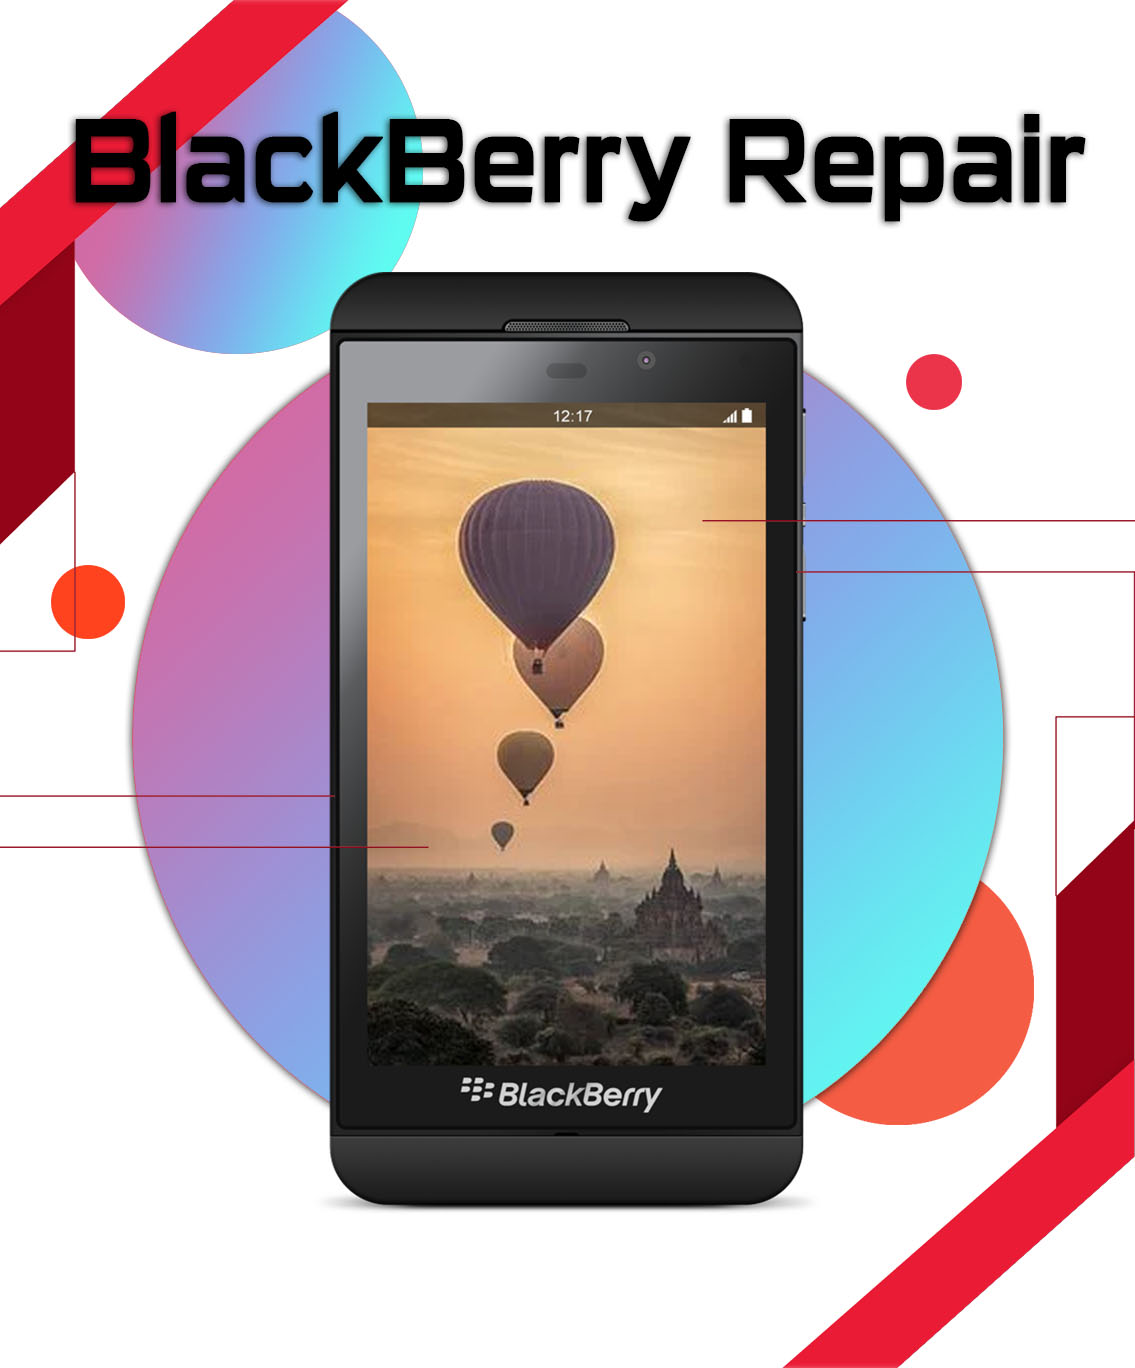 Blackberry Cell Phone Repair in Vancouver